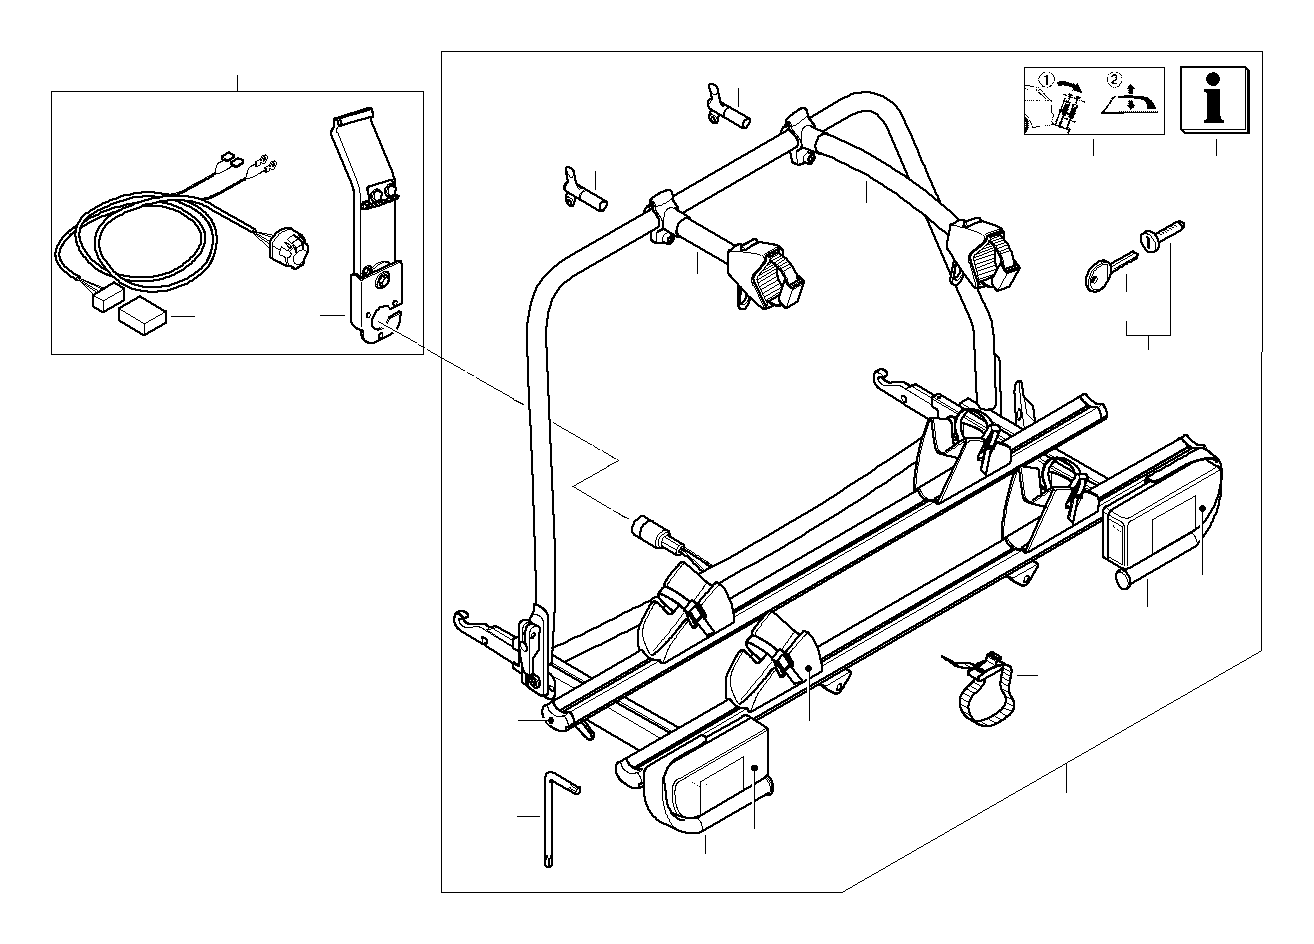 Gravely Wiring Diagrams 915102 Zt 2040 as well 2001 Bmw 740i Fuse Box Location besides 2008 Bmw 535i Fuse Box in addition 2010 Bmw 128i Parts Diagram Html in addition Showthread. on bmw 128i parts diagram